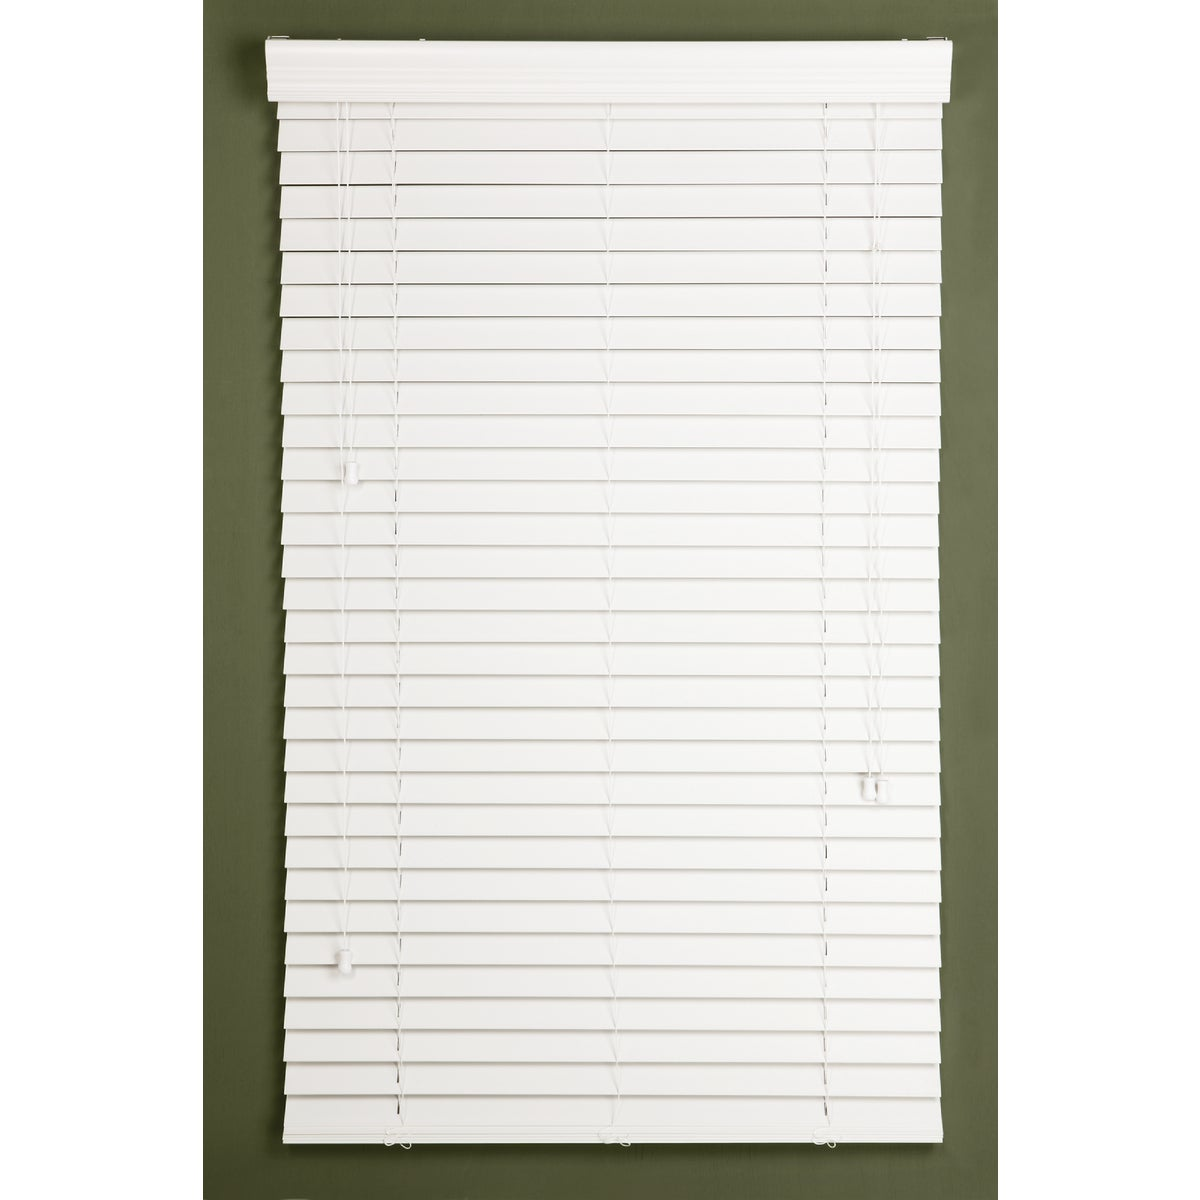 48X64 WHITE FAUX BLIND - 632186 by Lotus Wind Incom